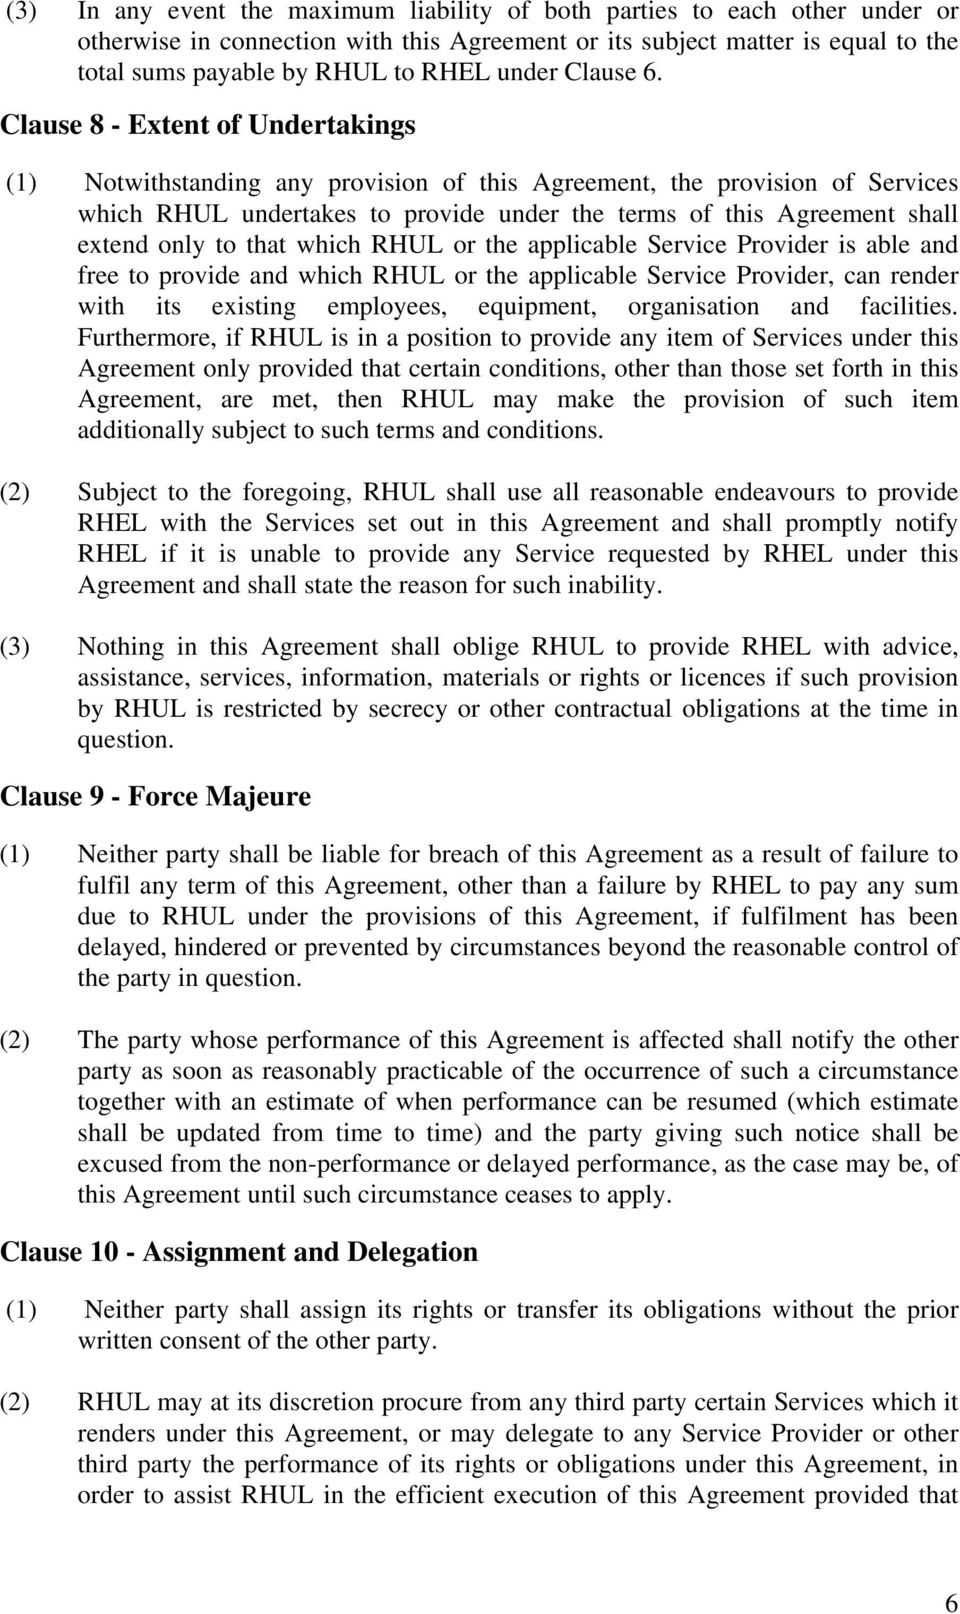 Clause 8 - Extent of Undertakings (1) Notwithstanding any provision of this Agreement, the provision of Services which RHUL undertakes to provide under the terms of this Agreement shall extend only